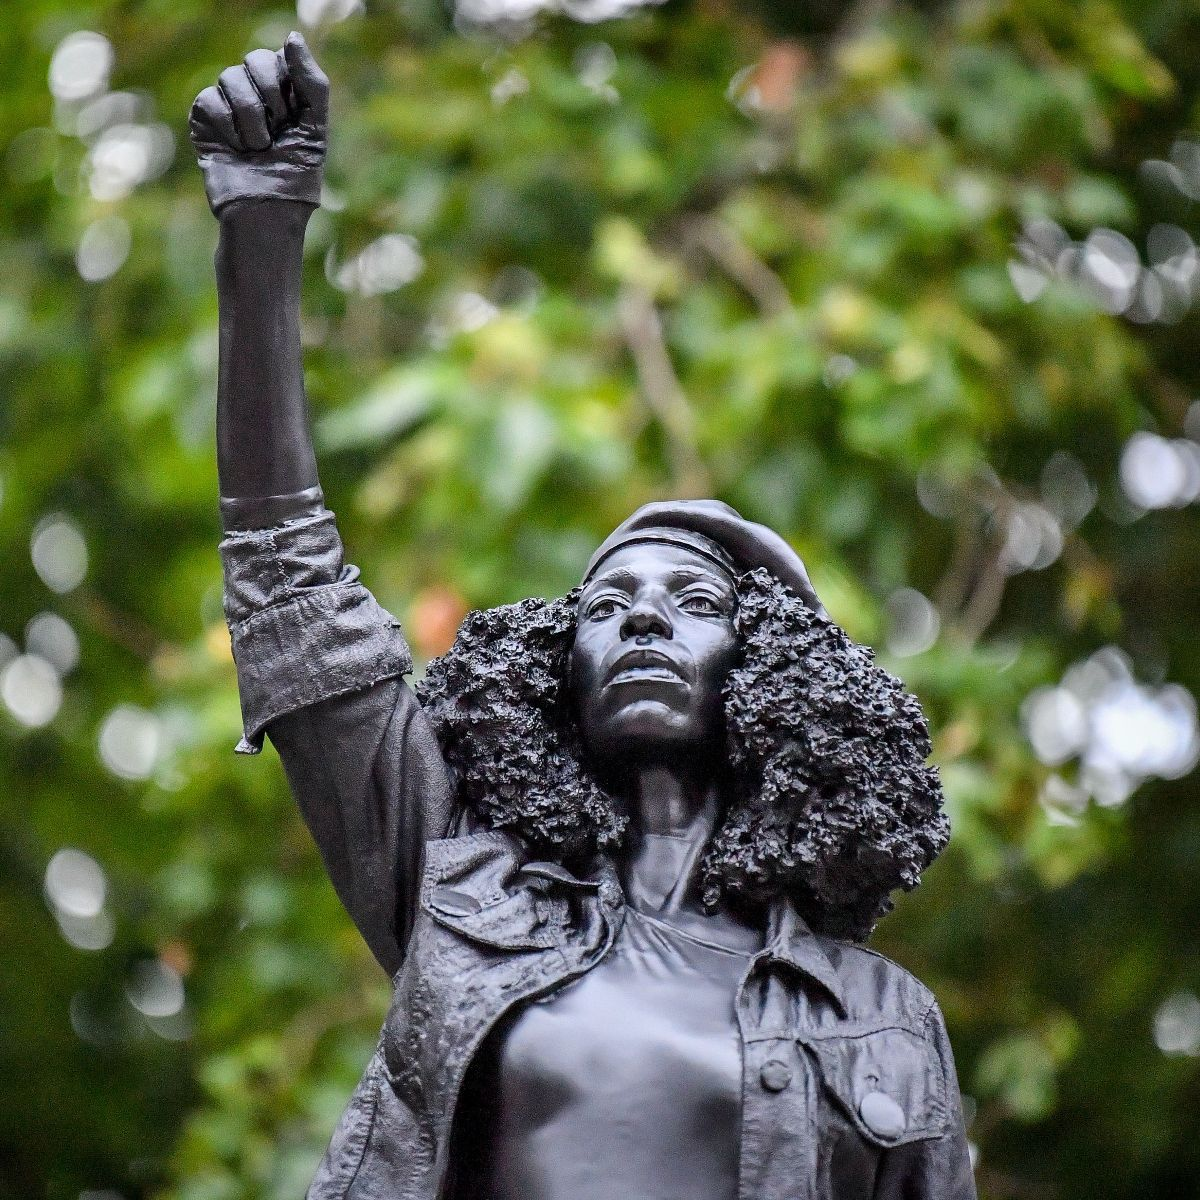 Colston statue replaced with Marc Quinn's sculpture of Black Lives Matter  activist [updated] - ArtReview